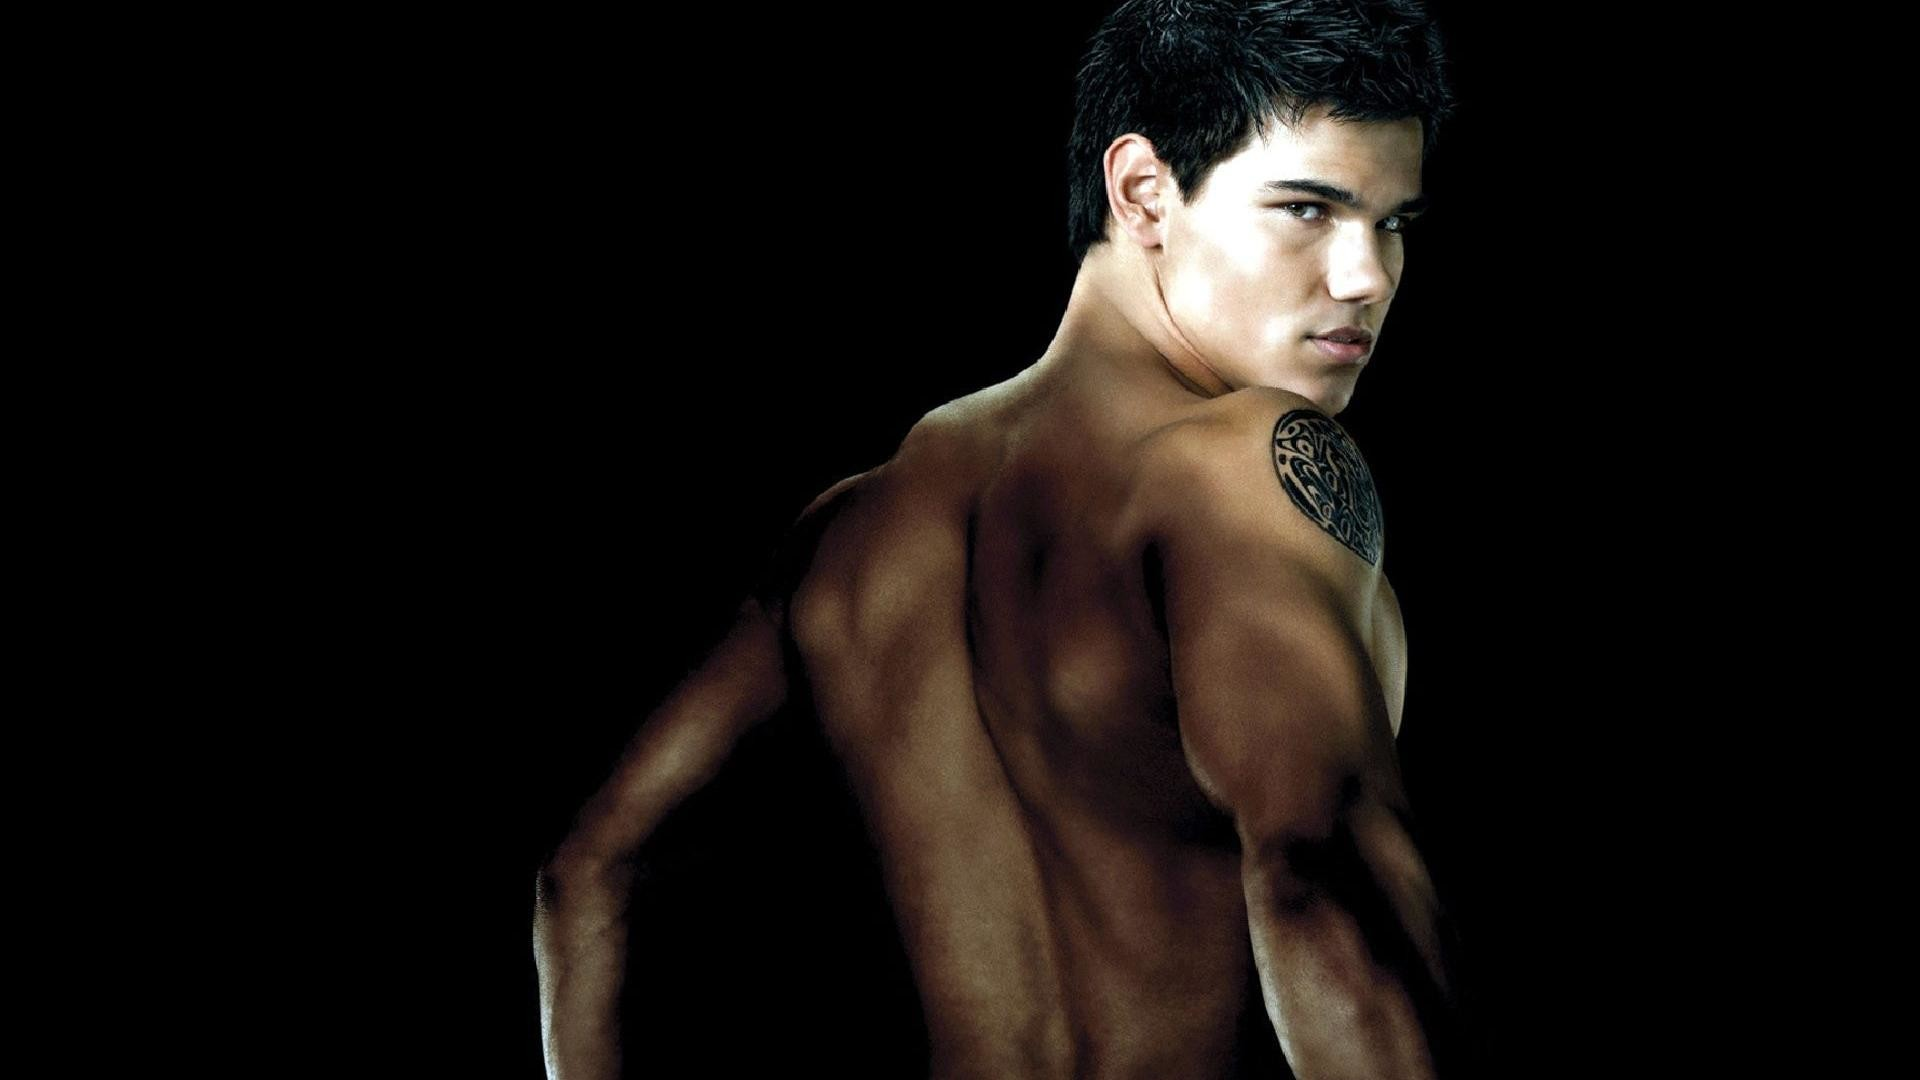 Taylor Lautner Shirtless Wallpaper 61 images 1920x1080